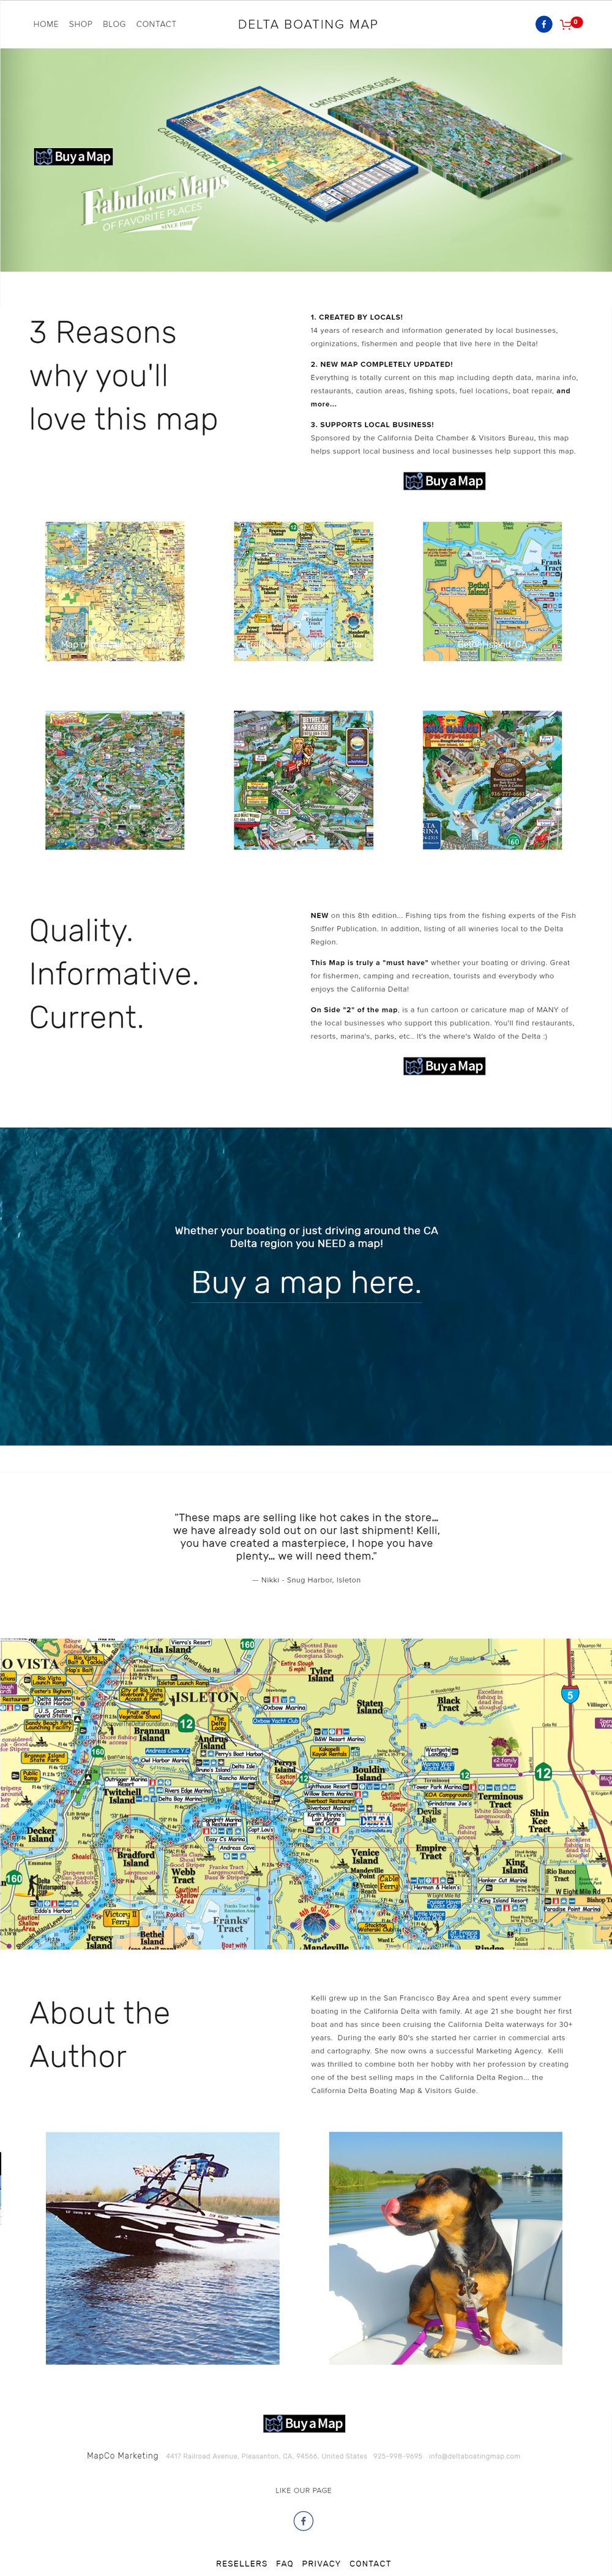 Delta Boating Map - eCommerce